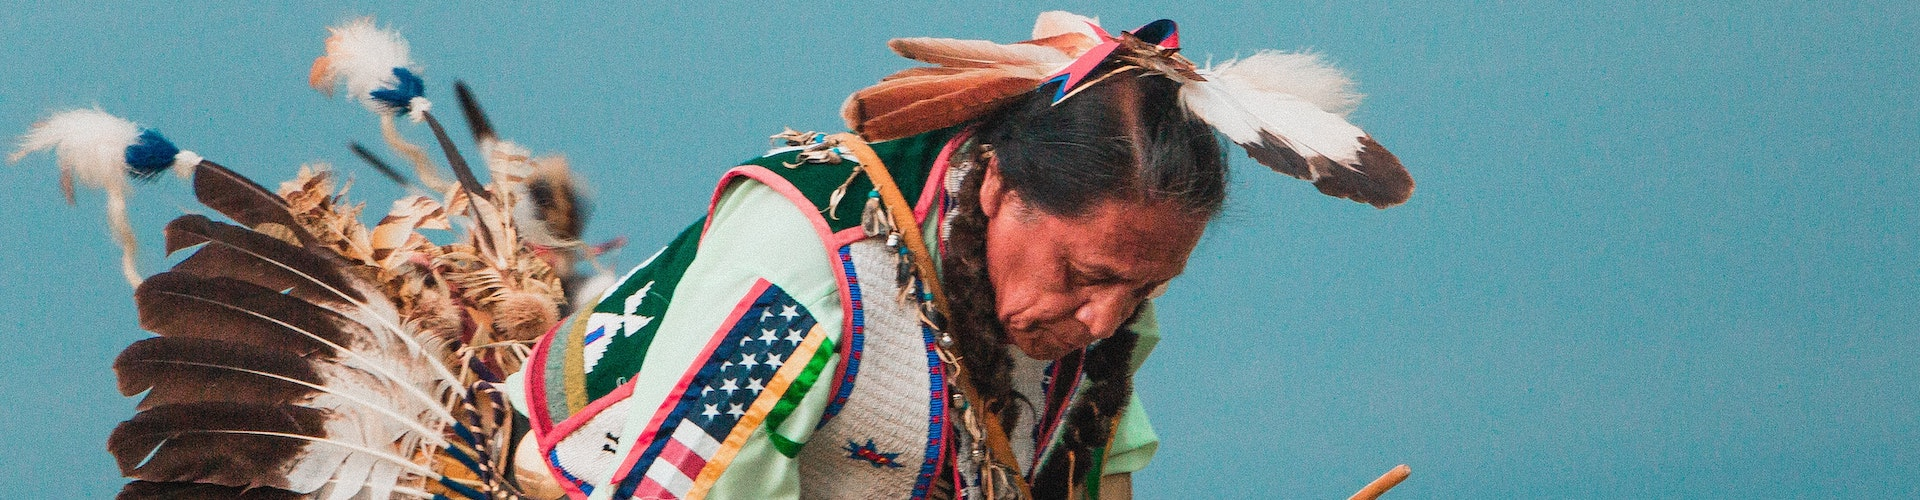 shamanic healer in ceremony, therapists vs shamans which is more legitimate